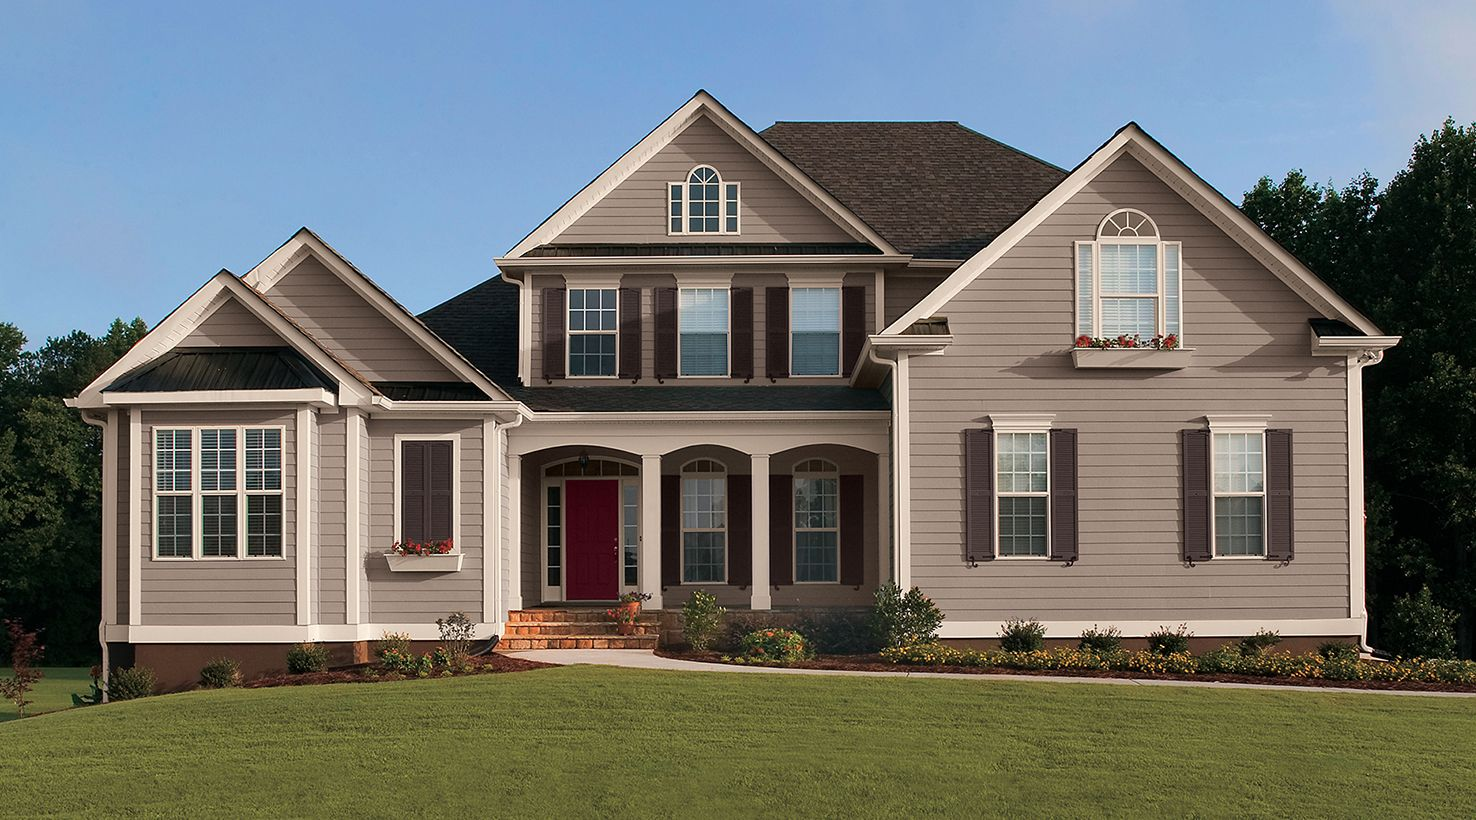 SW - IMG - Inspiration Gallery - Exterior Homes - Warm Neutral ...